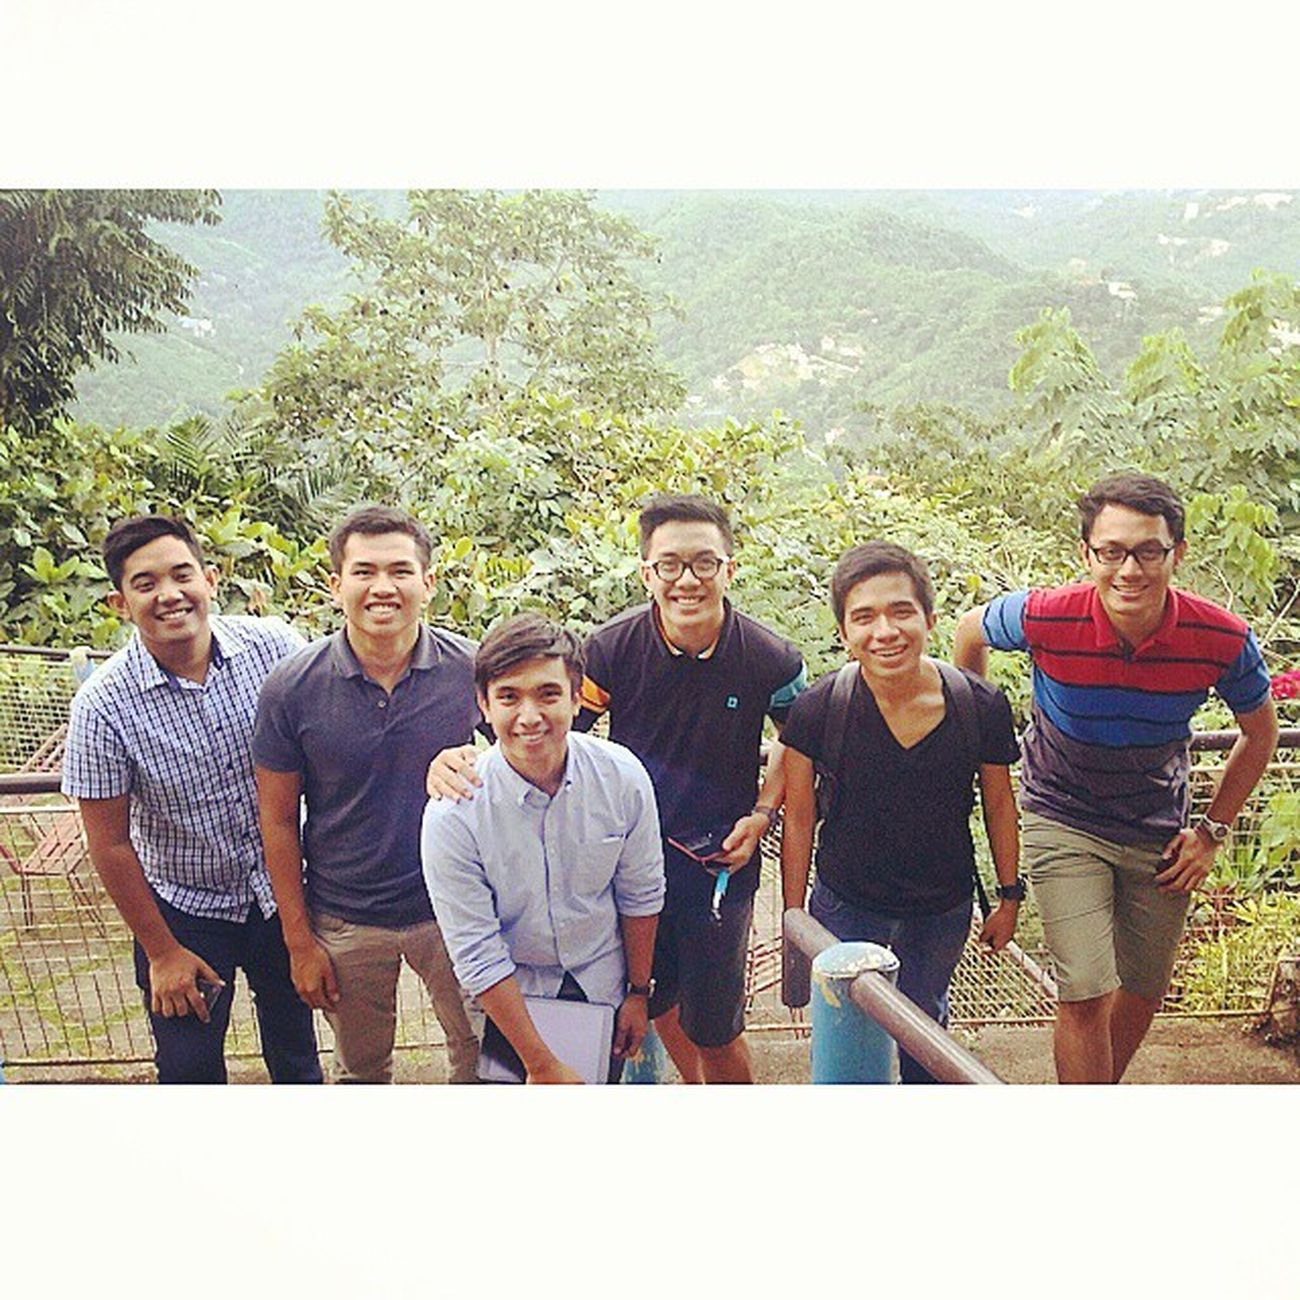 With my co-panel interviewers for JENESYS Program's student ambassadors - Visayas National Screening at Mountain View Nature's Park. JenesysProgram Alumni DepEd (From Left to Right) Kuya Jay of DepEd, Anton of Action for Economic Reform, Nicolai of Student Council Alliance of the Philippines, Kuya @raffymagno and Mike of DepEd, and yours truly.